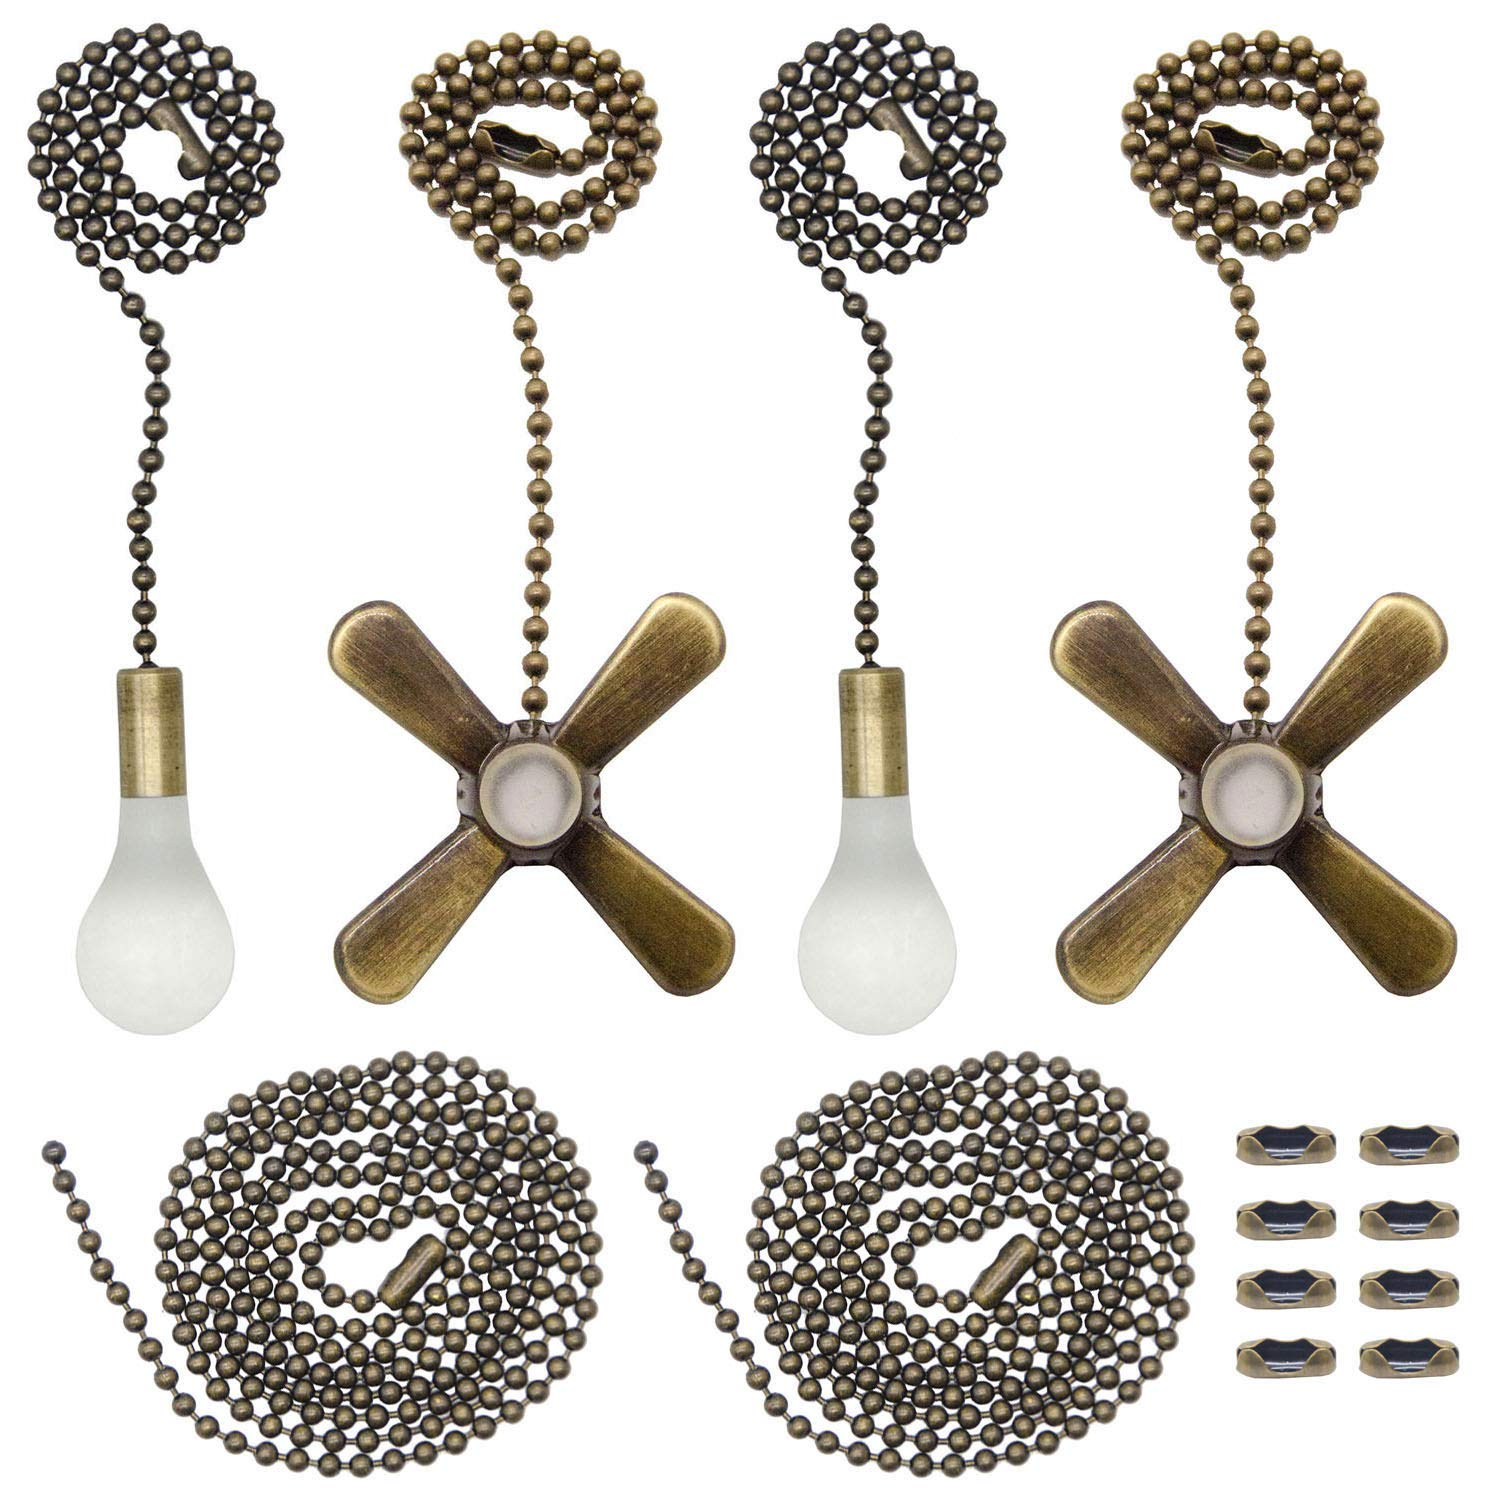 Iceyyyy Ceiling Fan Pull Chain Set Including Extra 39.4 inches Fan Pull Chain Extension and Ceiling Fan Chain Connector by ICEYYYY